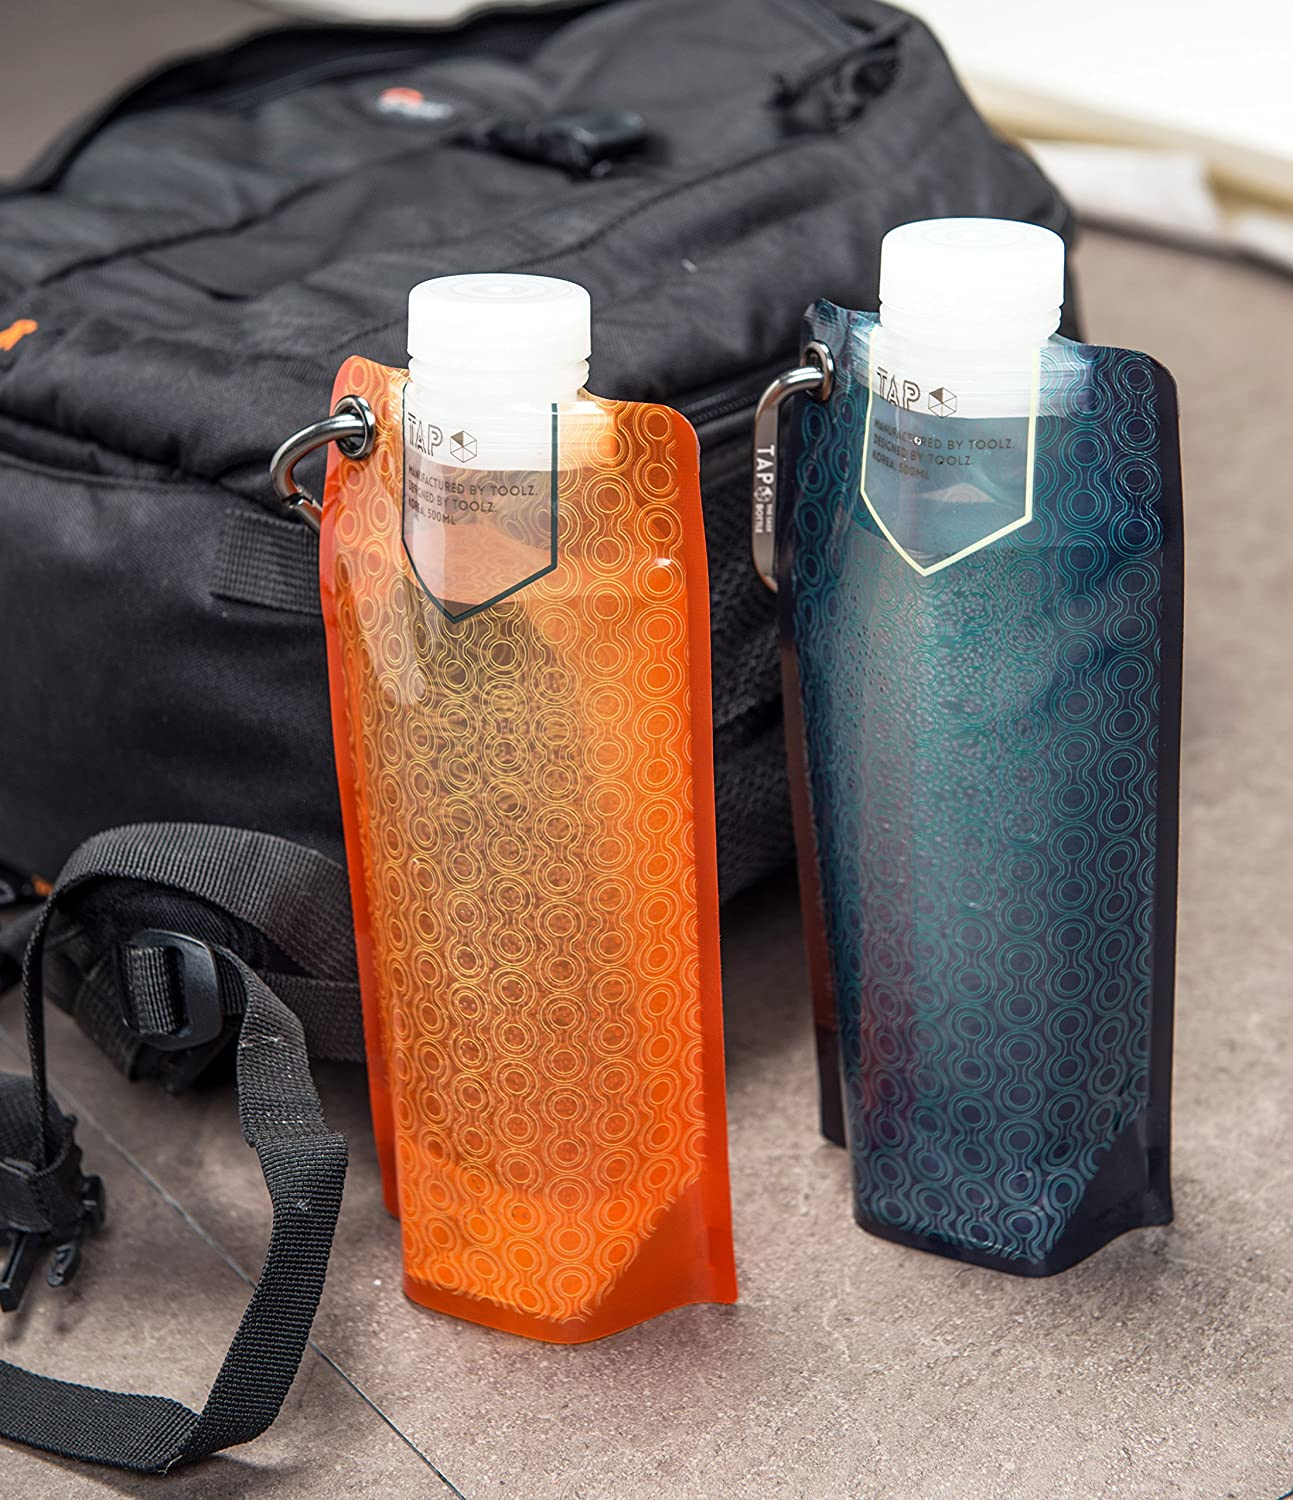 Tap Antibacterial Collapsible Water Bottle BPA Free Flat Hydration Soft Canteen Leevo inc.